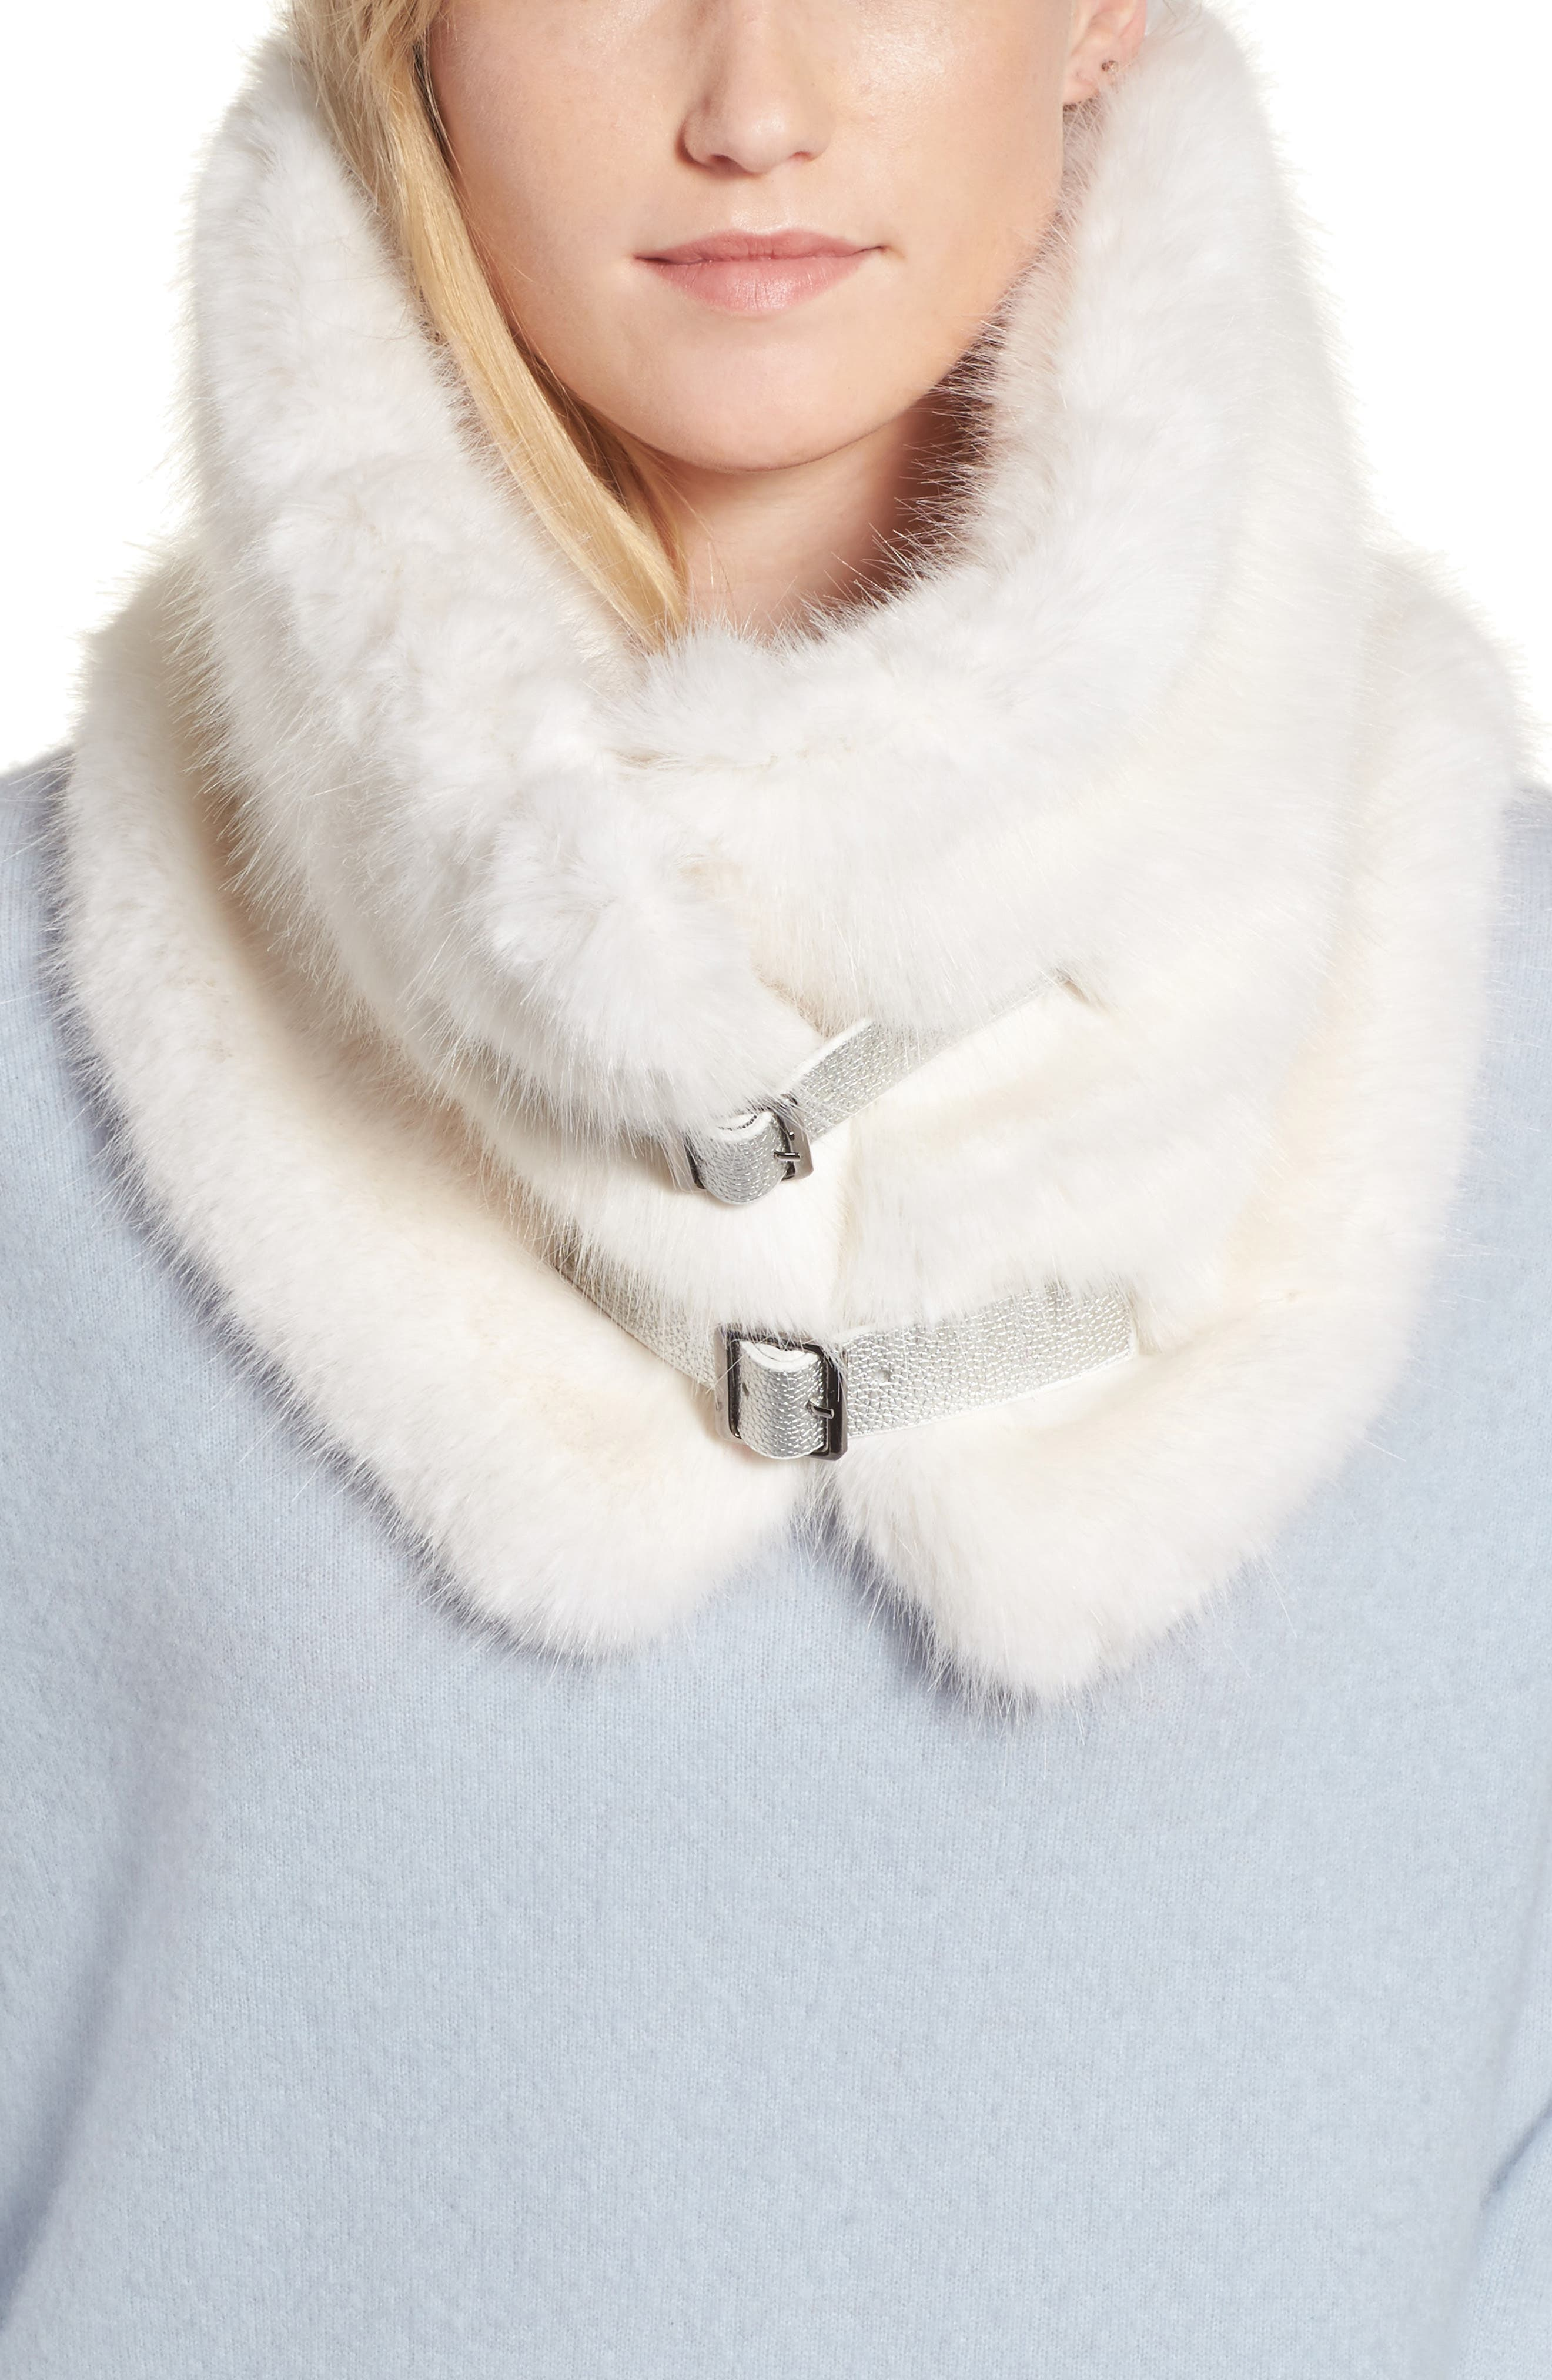 Buckled Faux Fur Cowl Scarf,                             Main thumbnail 1, color,                             100